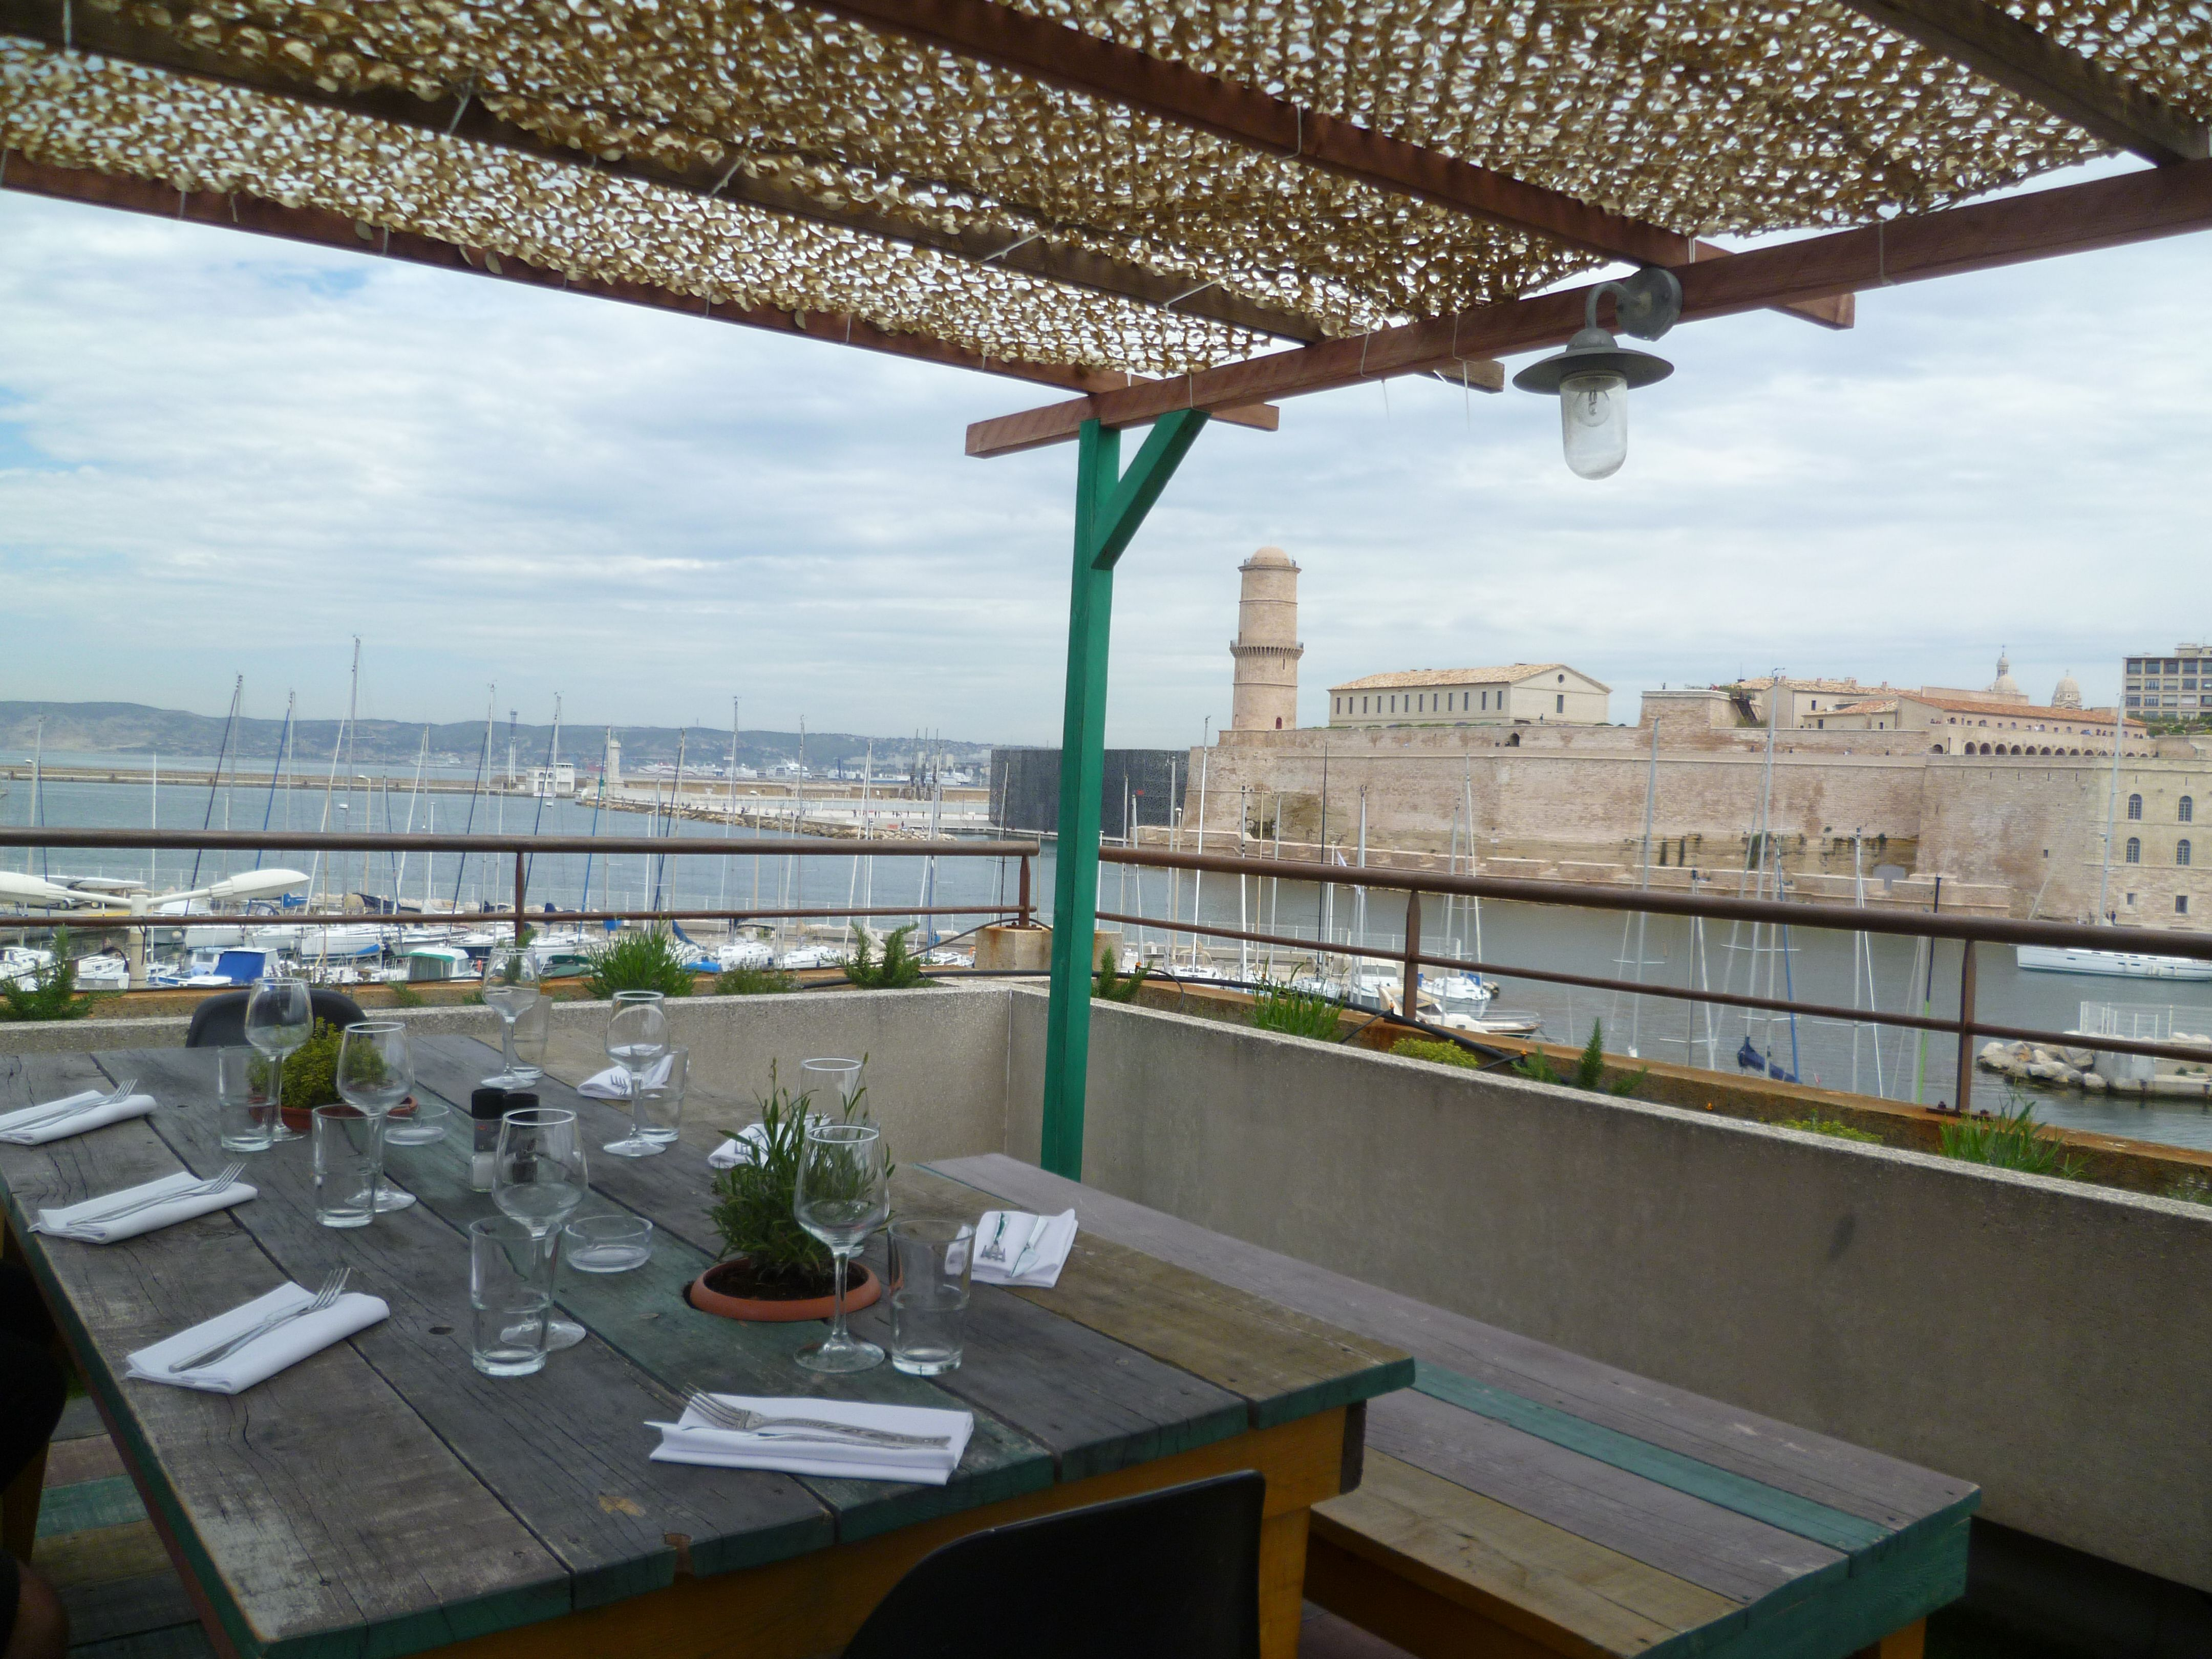 Marseille Restaurants From Top Choices To Small Bistros